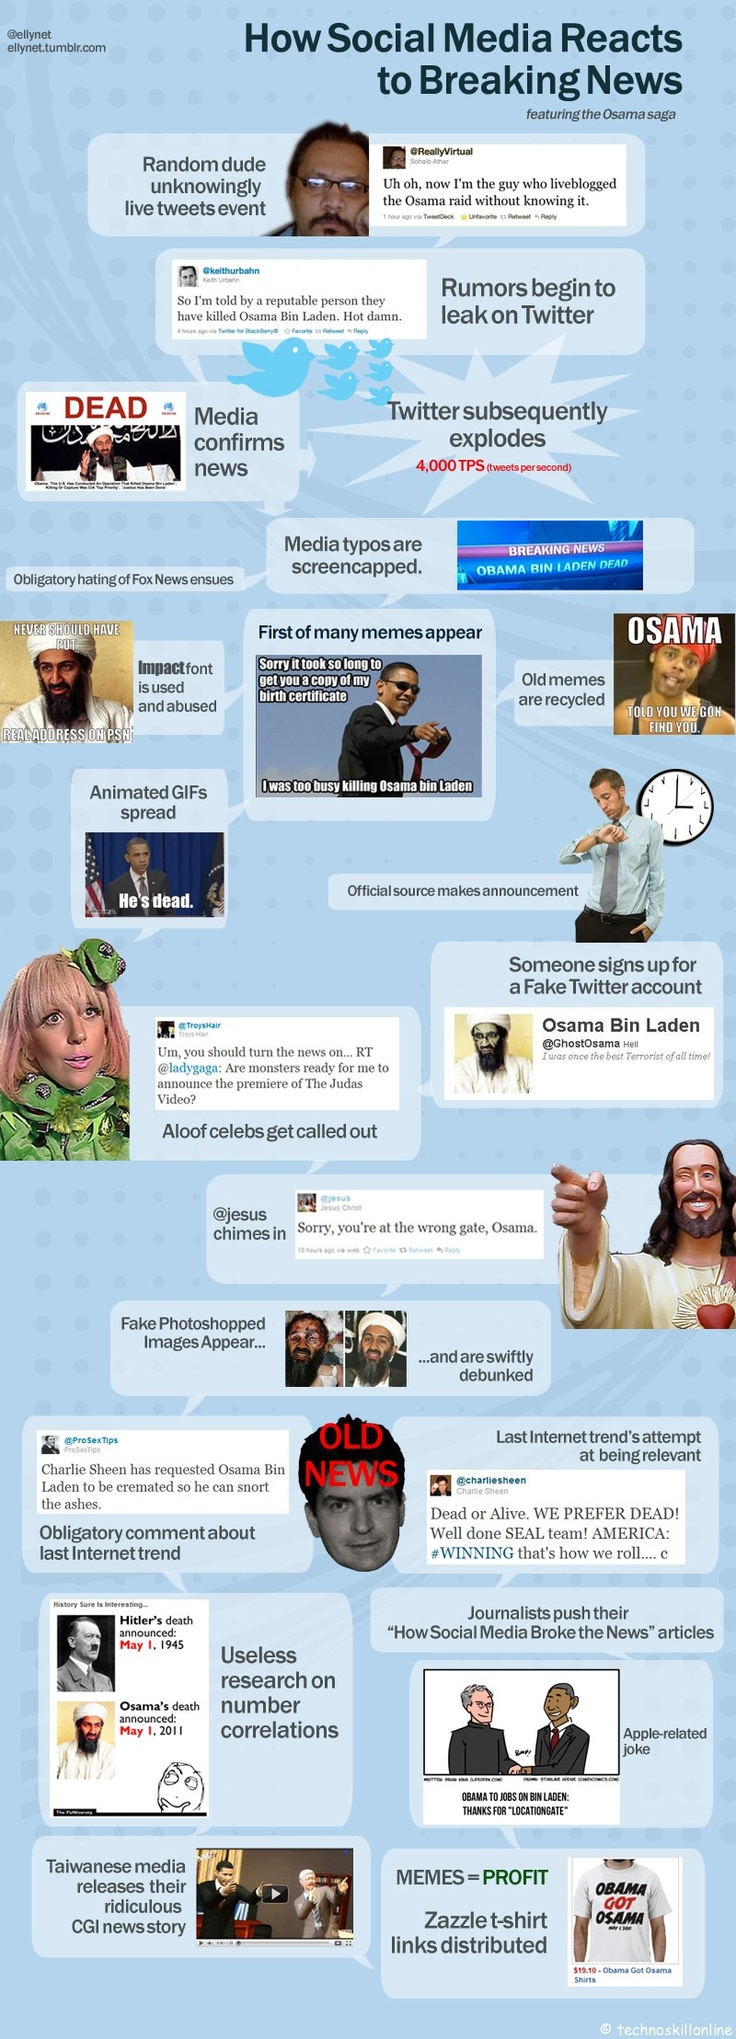 How Social media reacts to breaking news: Breaking News, Lelio Simi, Social Media, Things Newsies, Discover, Media React, Allican, Infographic, Break News